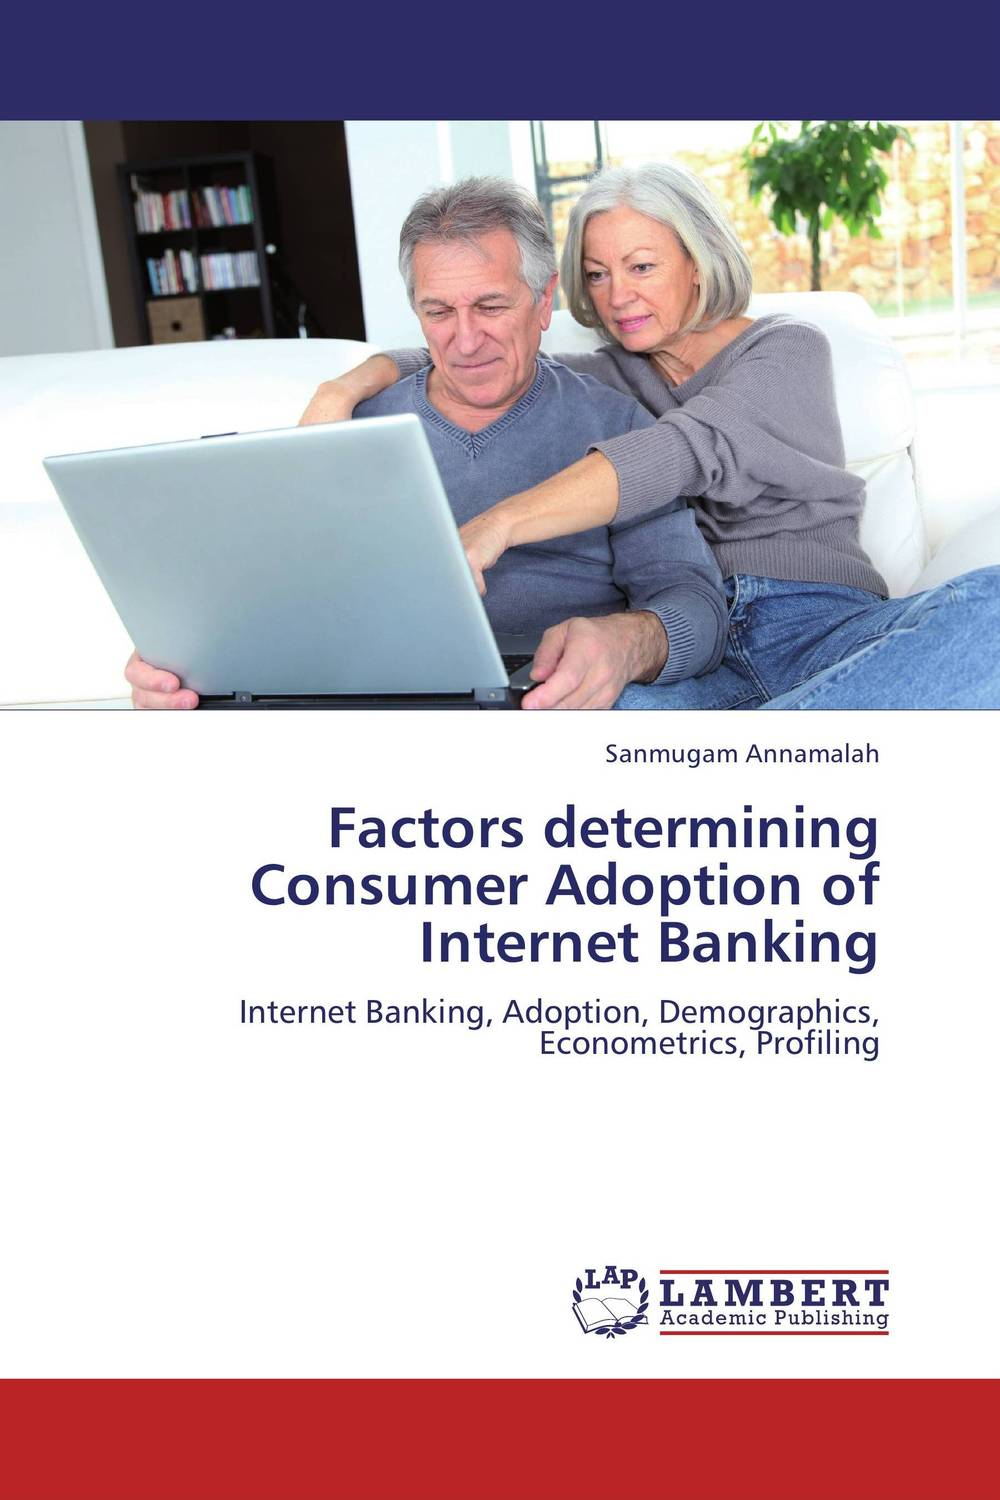 Factors determining Consumer Adoption of Internet Banking mining design patterns for internet banking architecture